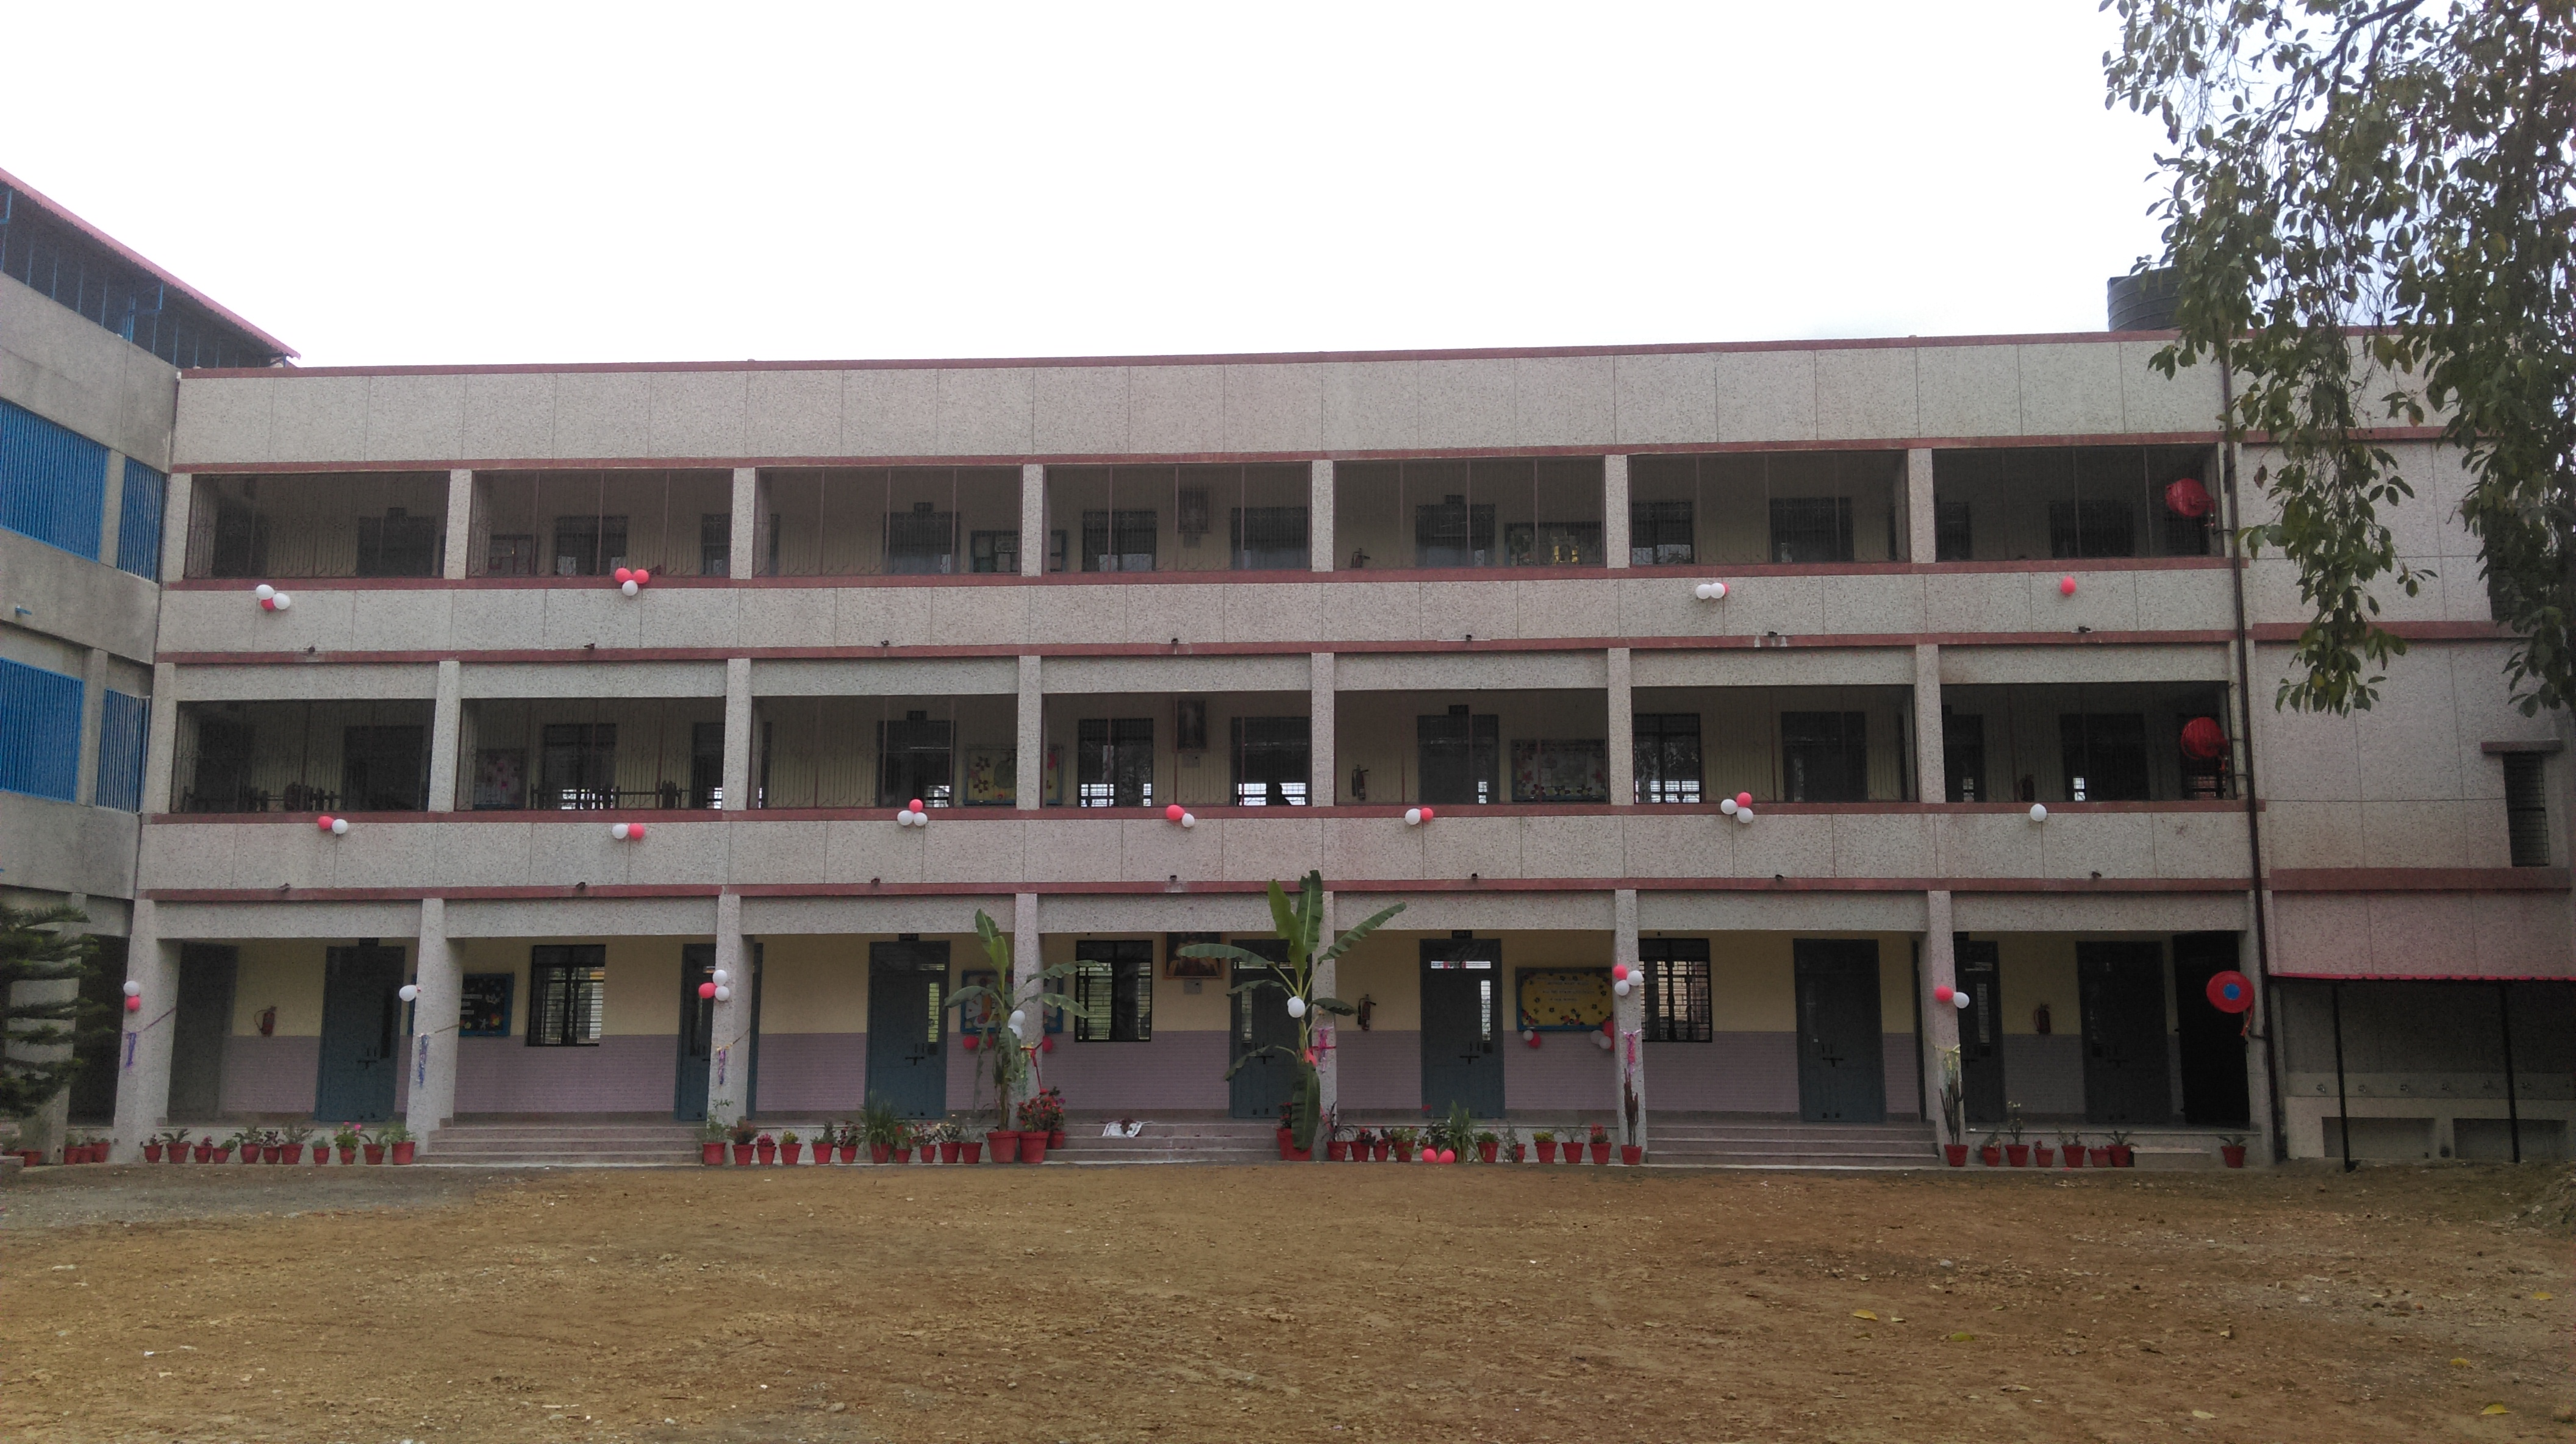 St, Marys School at Dehradun, Uttarakhand